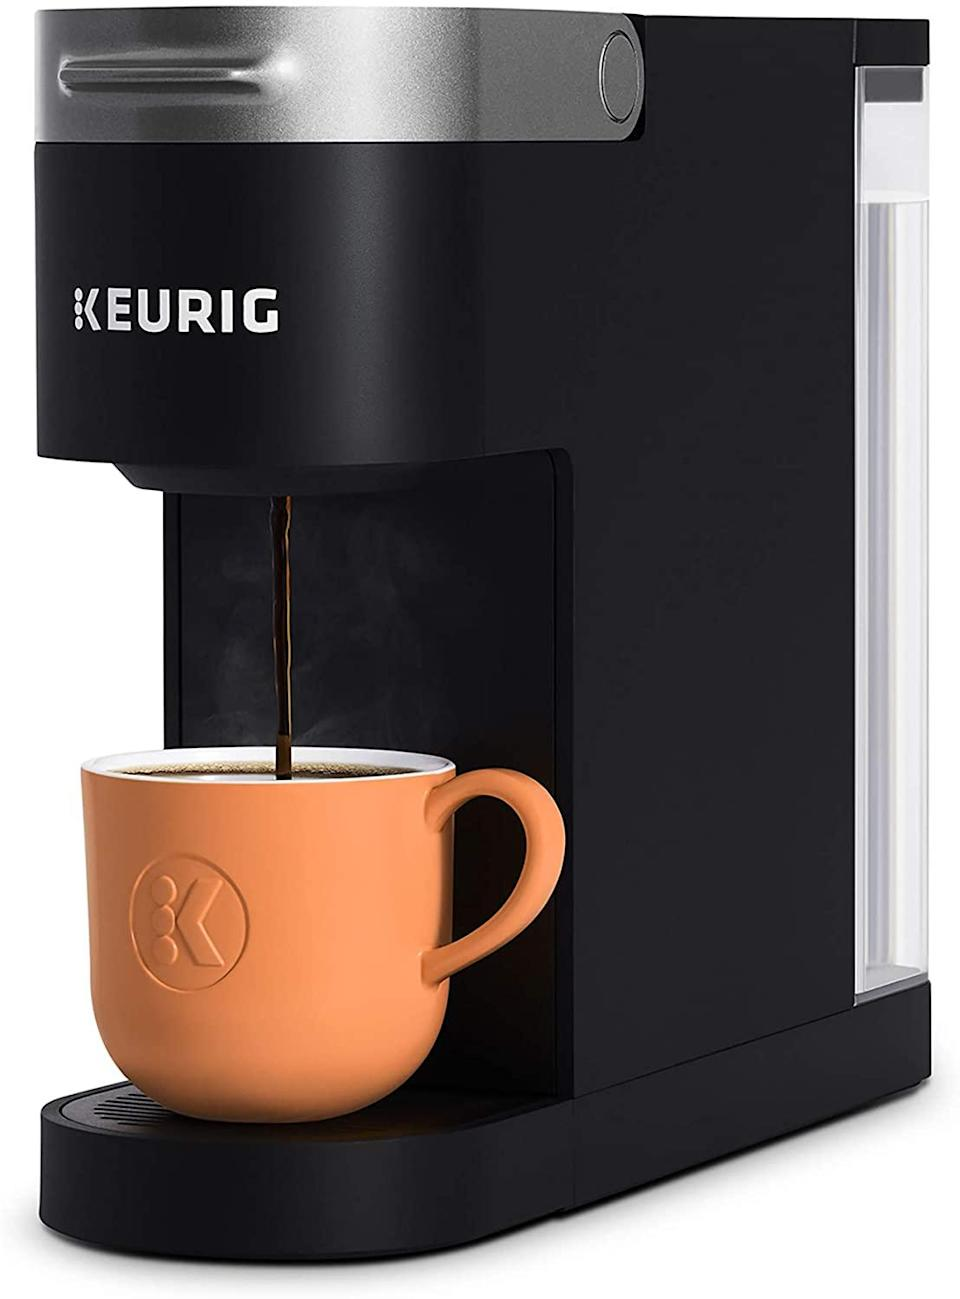 "<h2>36% Off Keurig K-Slim Coffee Maker</h2><br>For your best bean buds — this Amazon's Choice Keurig model is ready to brew them up a single-serve cup of their favorite java with a side of countertop-space-saving design. <br><br><strong>Keurig</strong> K-Slim Coffee Maker, $, available at <a href=""https://amzn.to/3og2fPr"" rel=""nofollow noopener"" target=""_blank"" data-ylk=""slk:Amazon"" class=""link rapid-noclick-resp"">Amazon</a>"